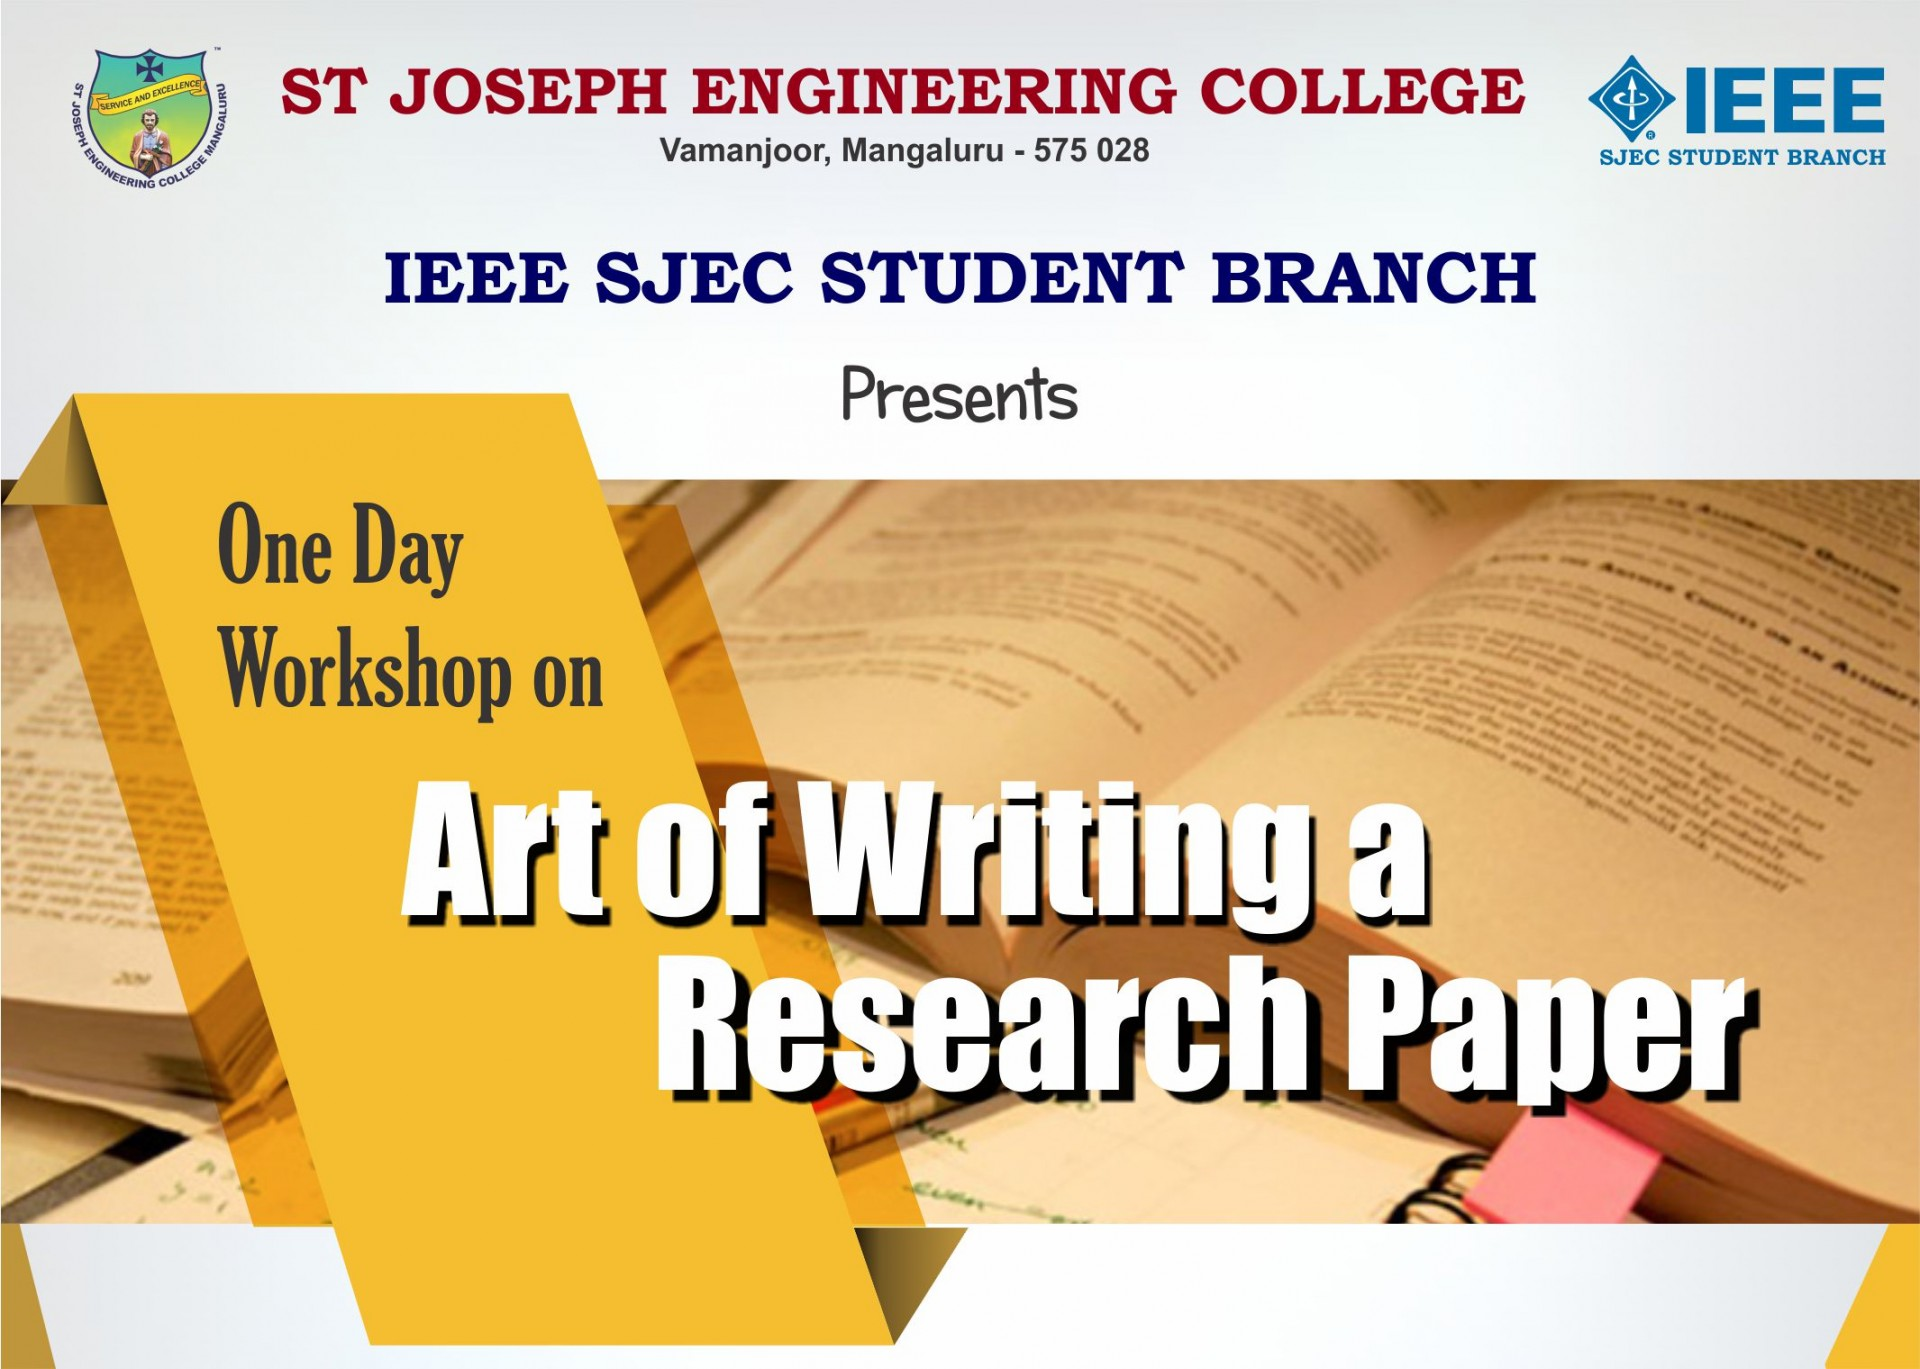 011 Workshop Banner Research Paper Striking Writing Meme Papers A Complete Guide 15th Edition Pdf Free 16th 1920